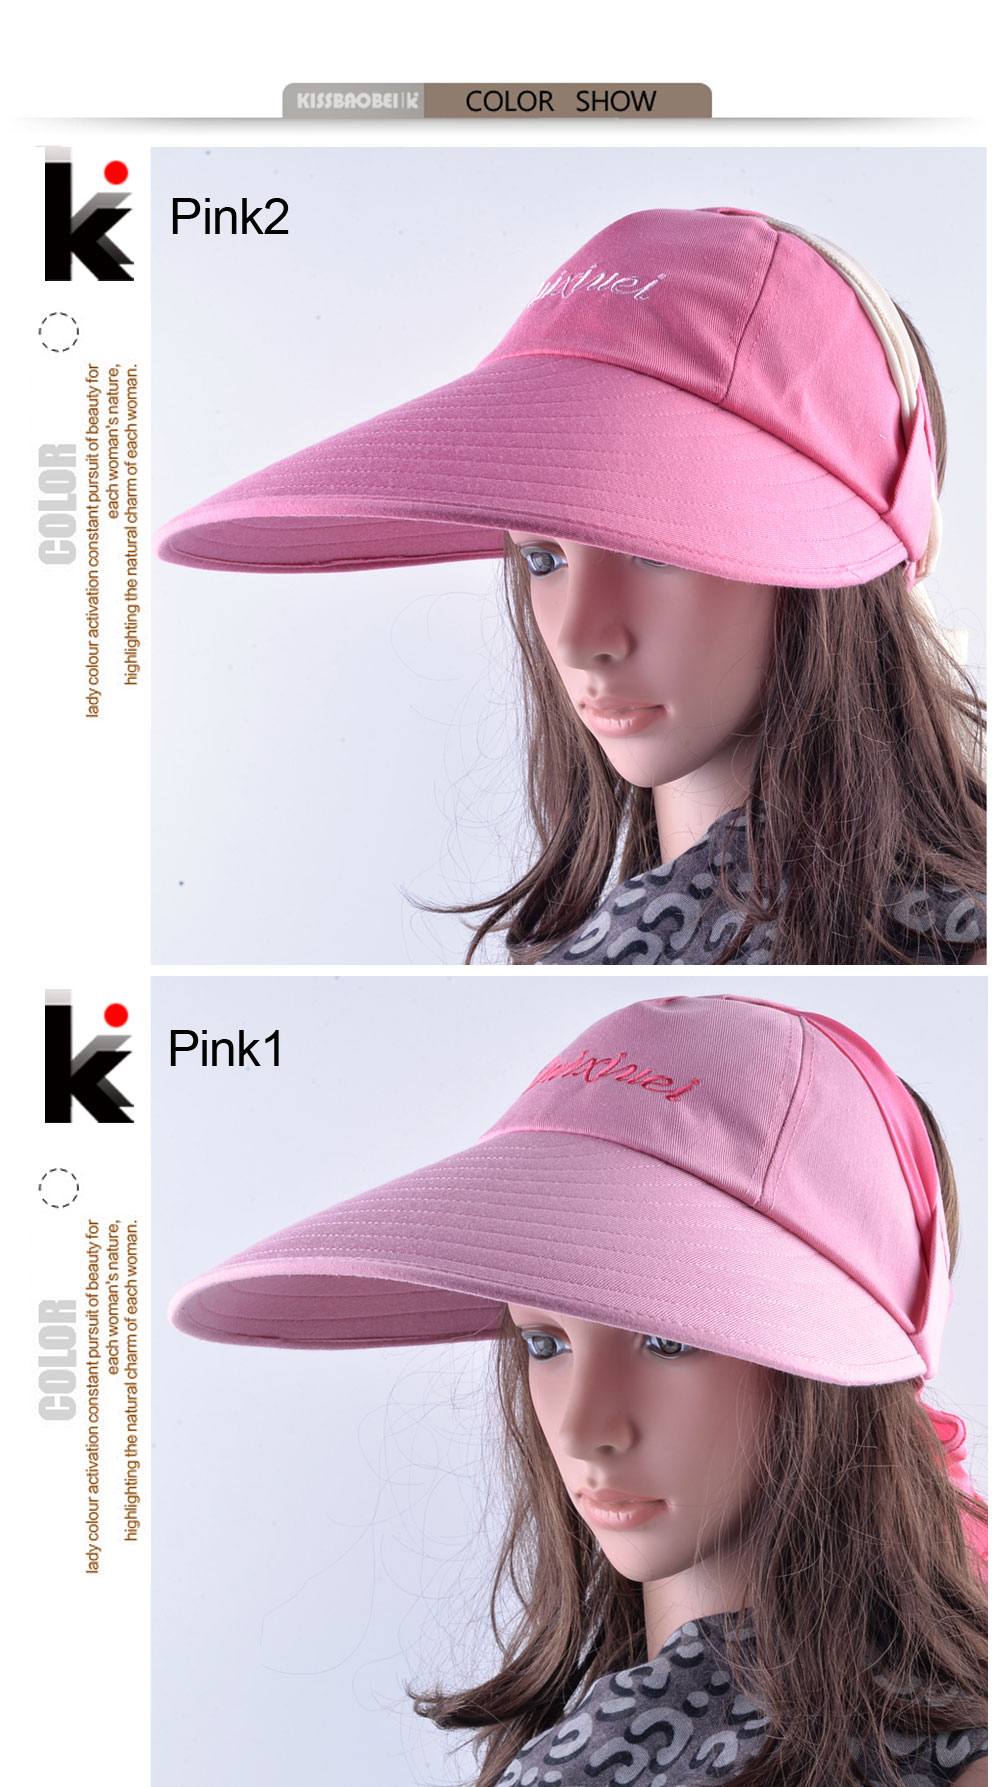 9a484438 Fashion Straw Hat For Women Summer Casual Wide Brim Sun Cap With Bow-knot  Ladies Vacation Beach Hats Big Visor Floppy ChapeauUSD 8.24/piece